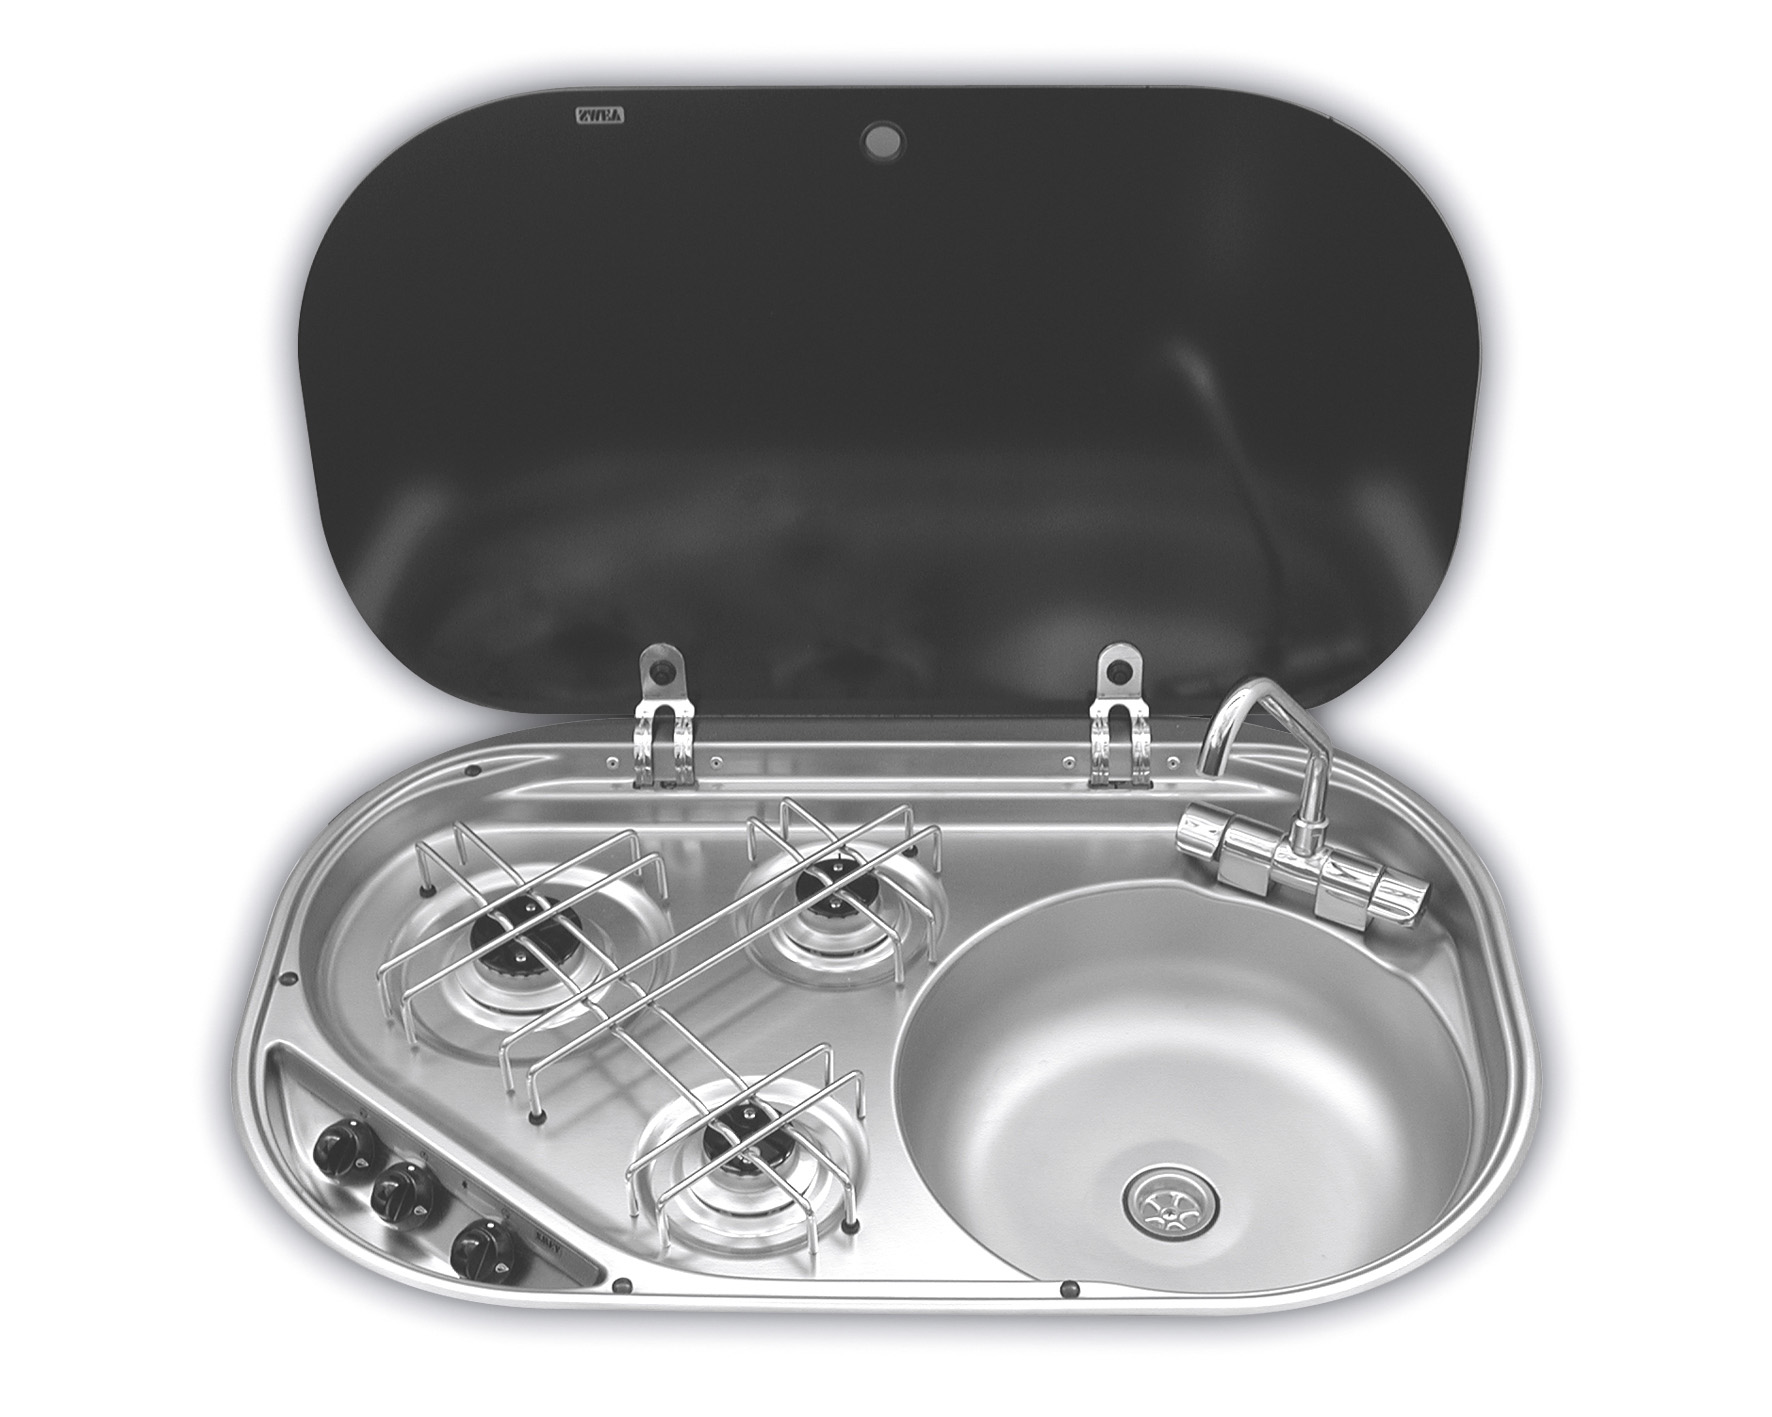 Smev 8323 - 3 Burner Hob & Sink Combination Unit